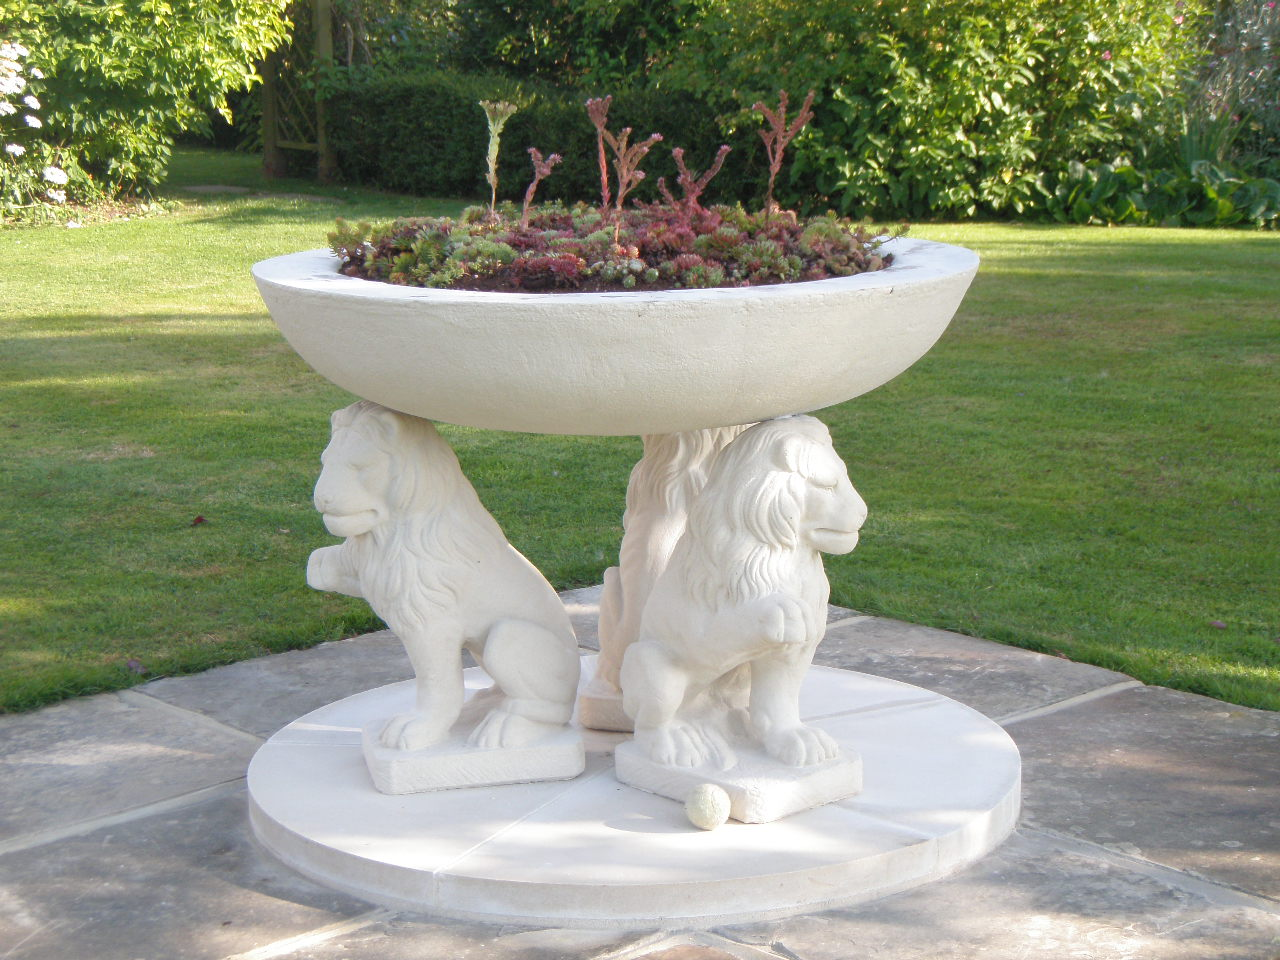 https://www.chilstone.com/garden-ornaments-category/sissinghurst-cast-stone-planter